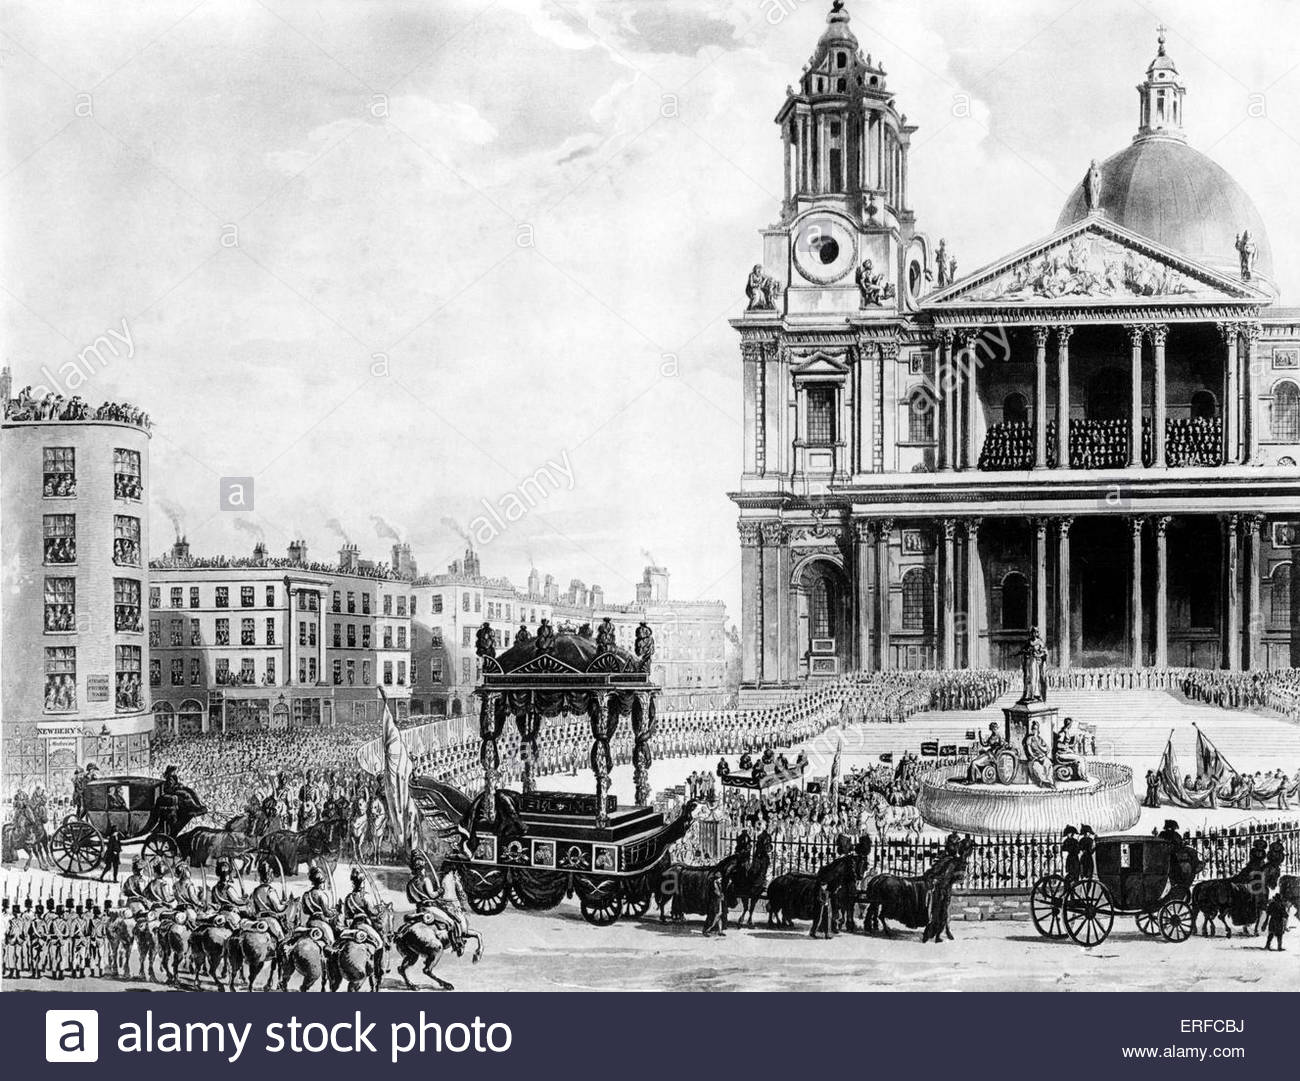 Engraving of Admiral Lord Horatio Nelson 's funeral procession. Engraved by M Mreigot from a drawing from life - Stock Image